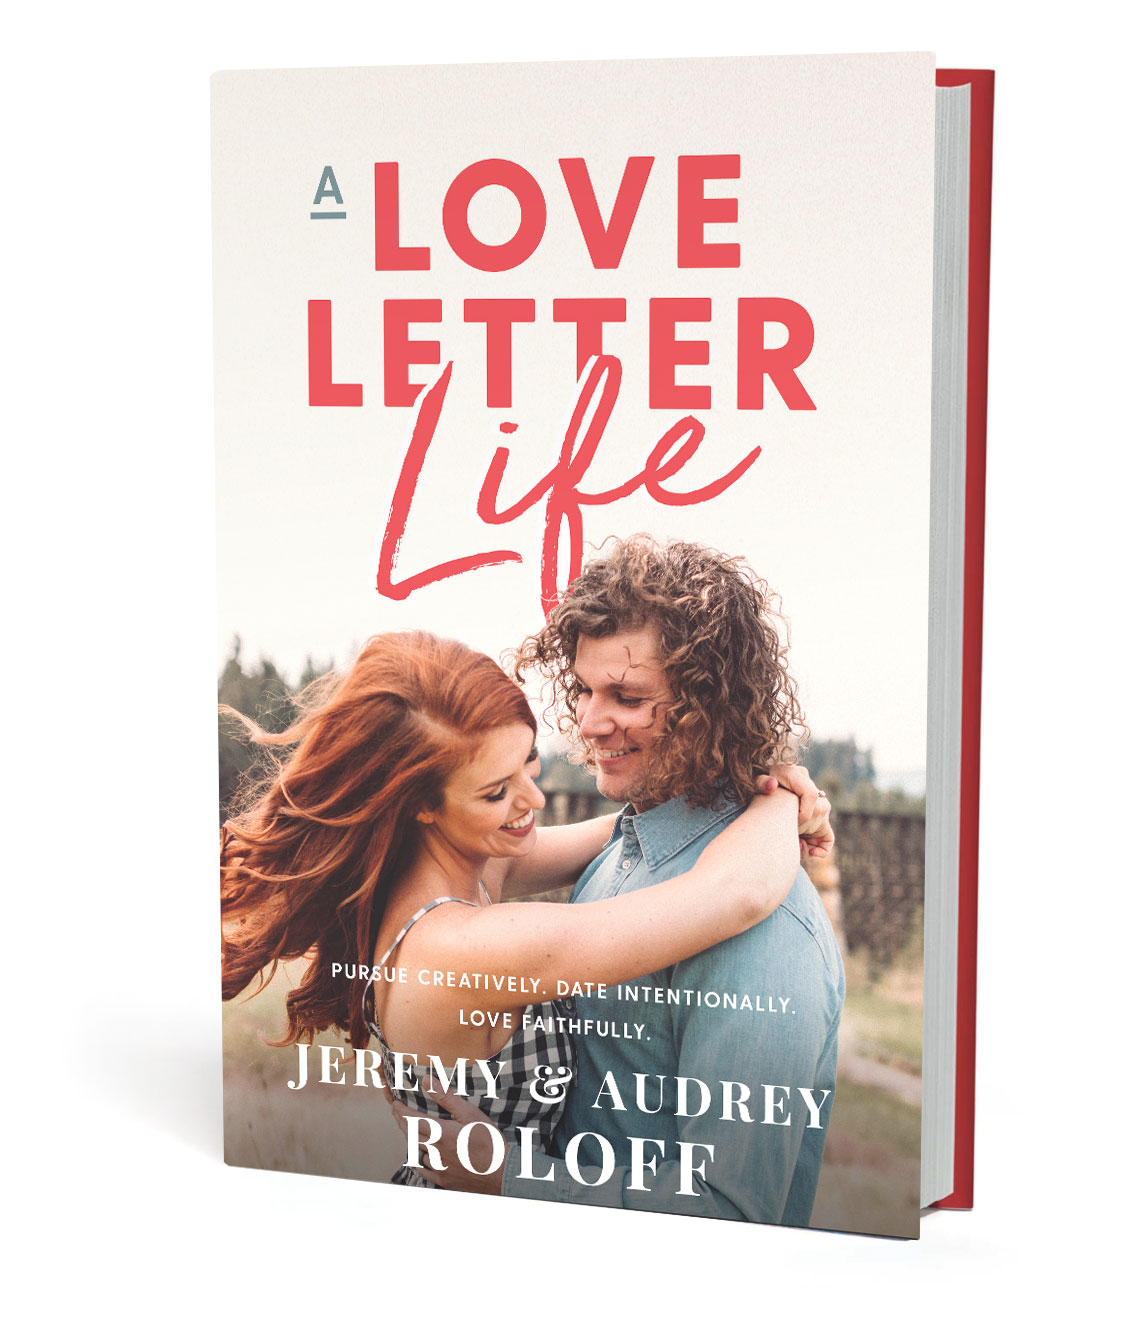 roloff-cover-3d-love-letter